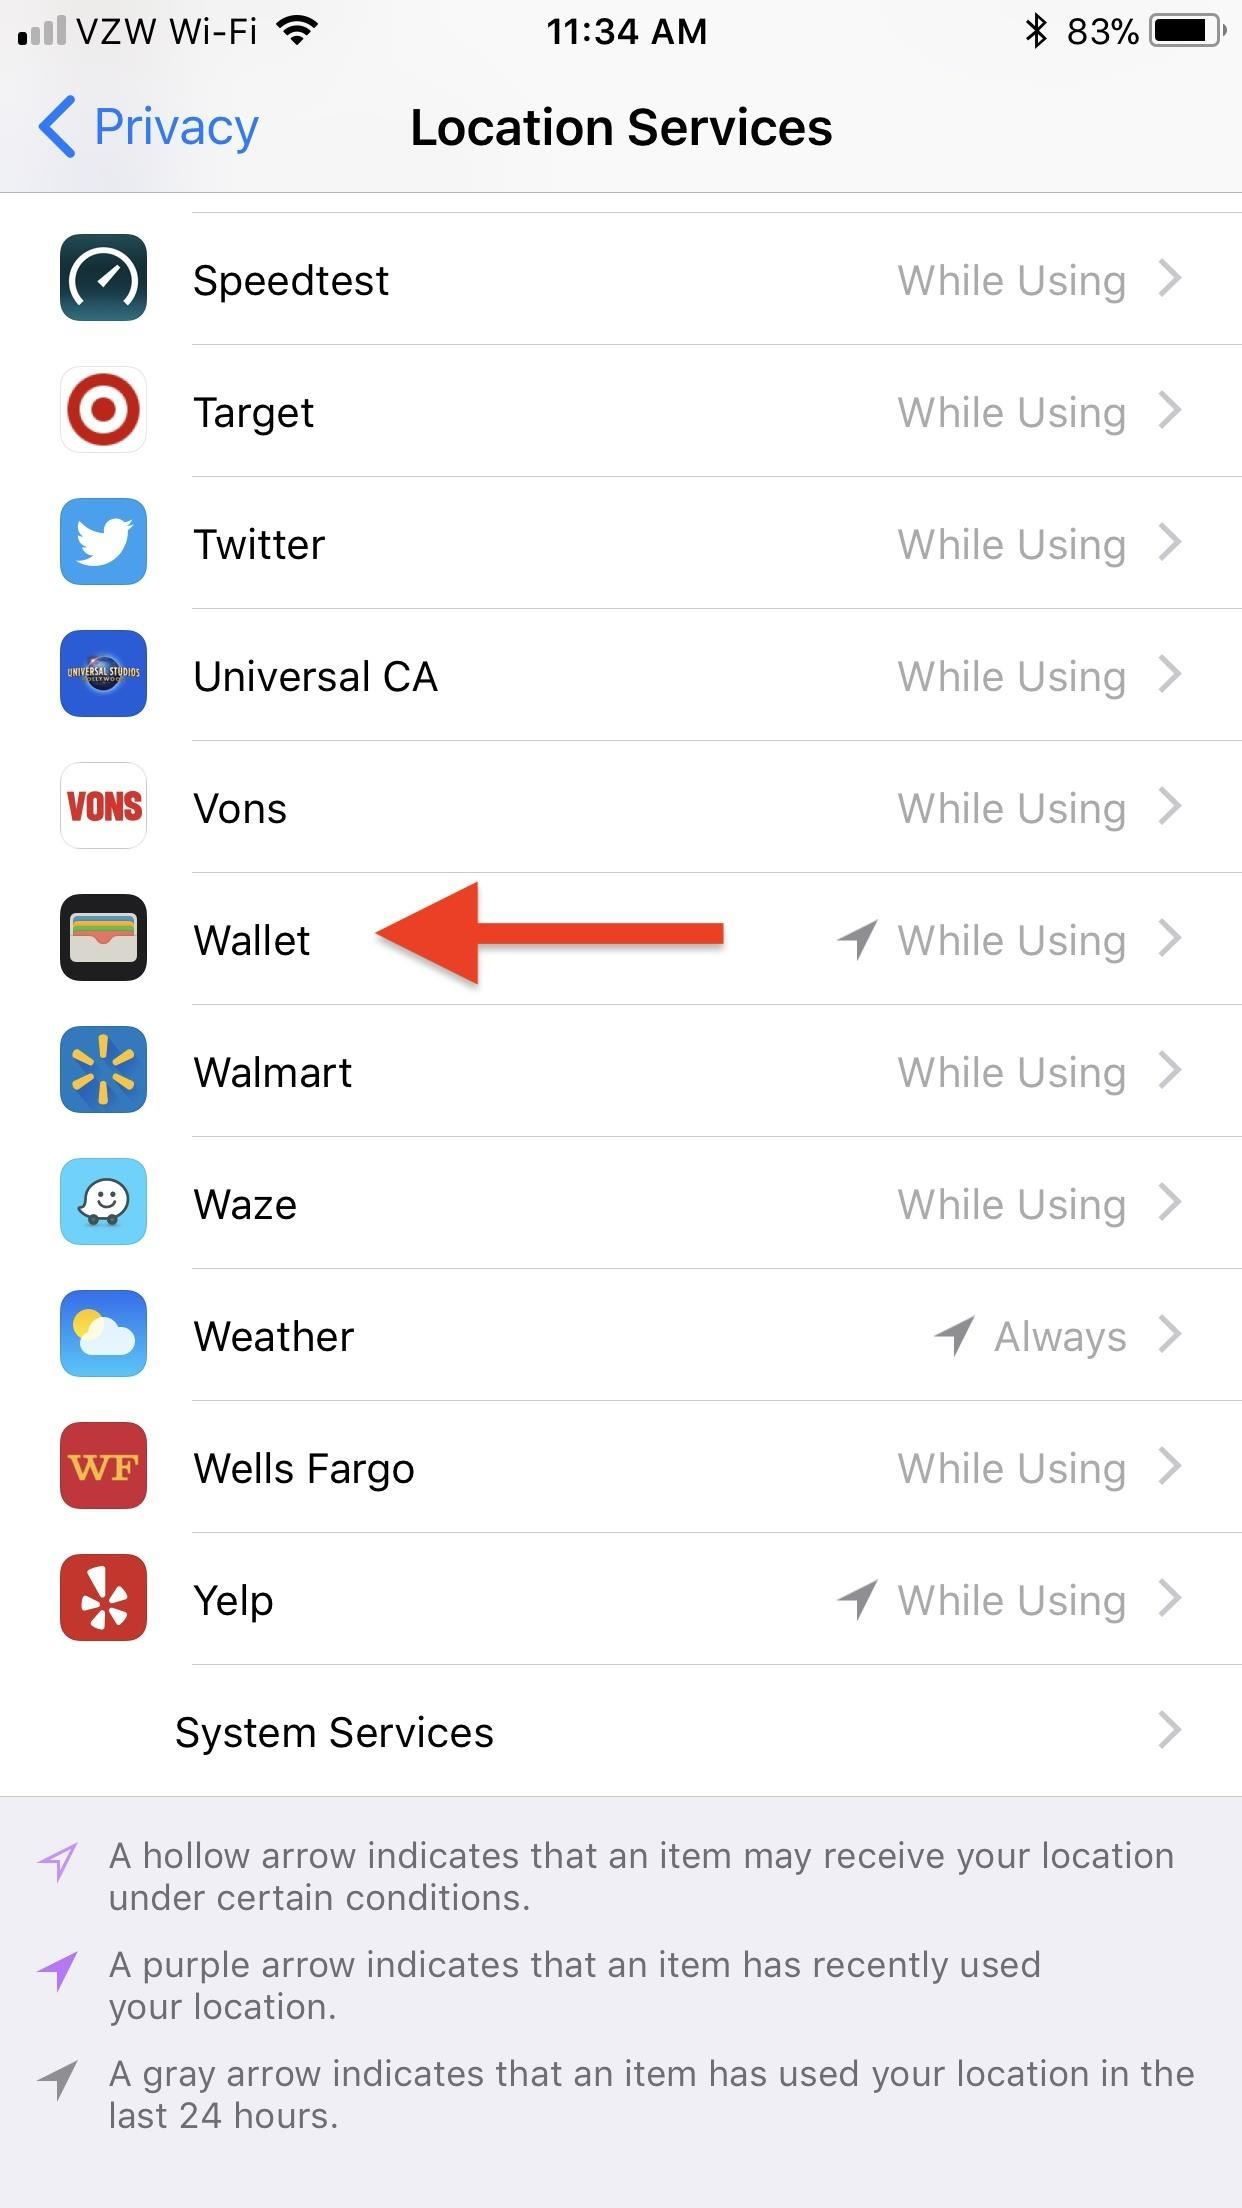 How to Get Rid of Persistent Wallet Suggestions on Your iPhone's Lock Screen